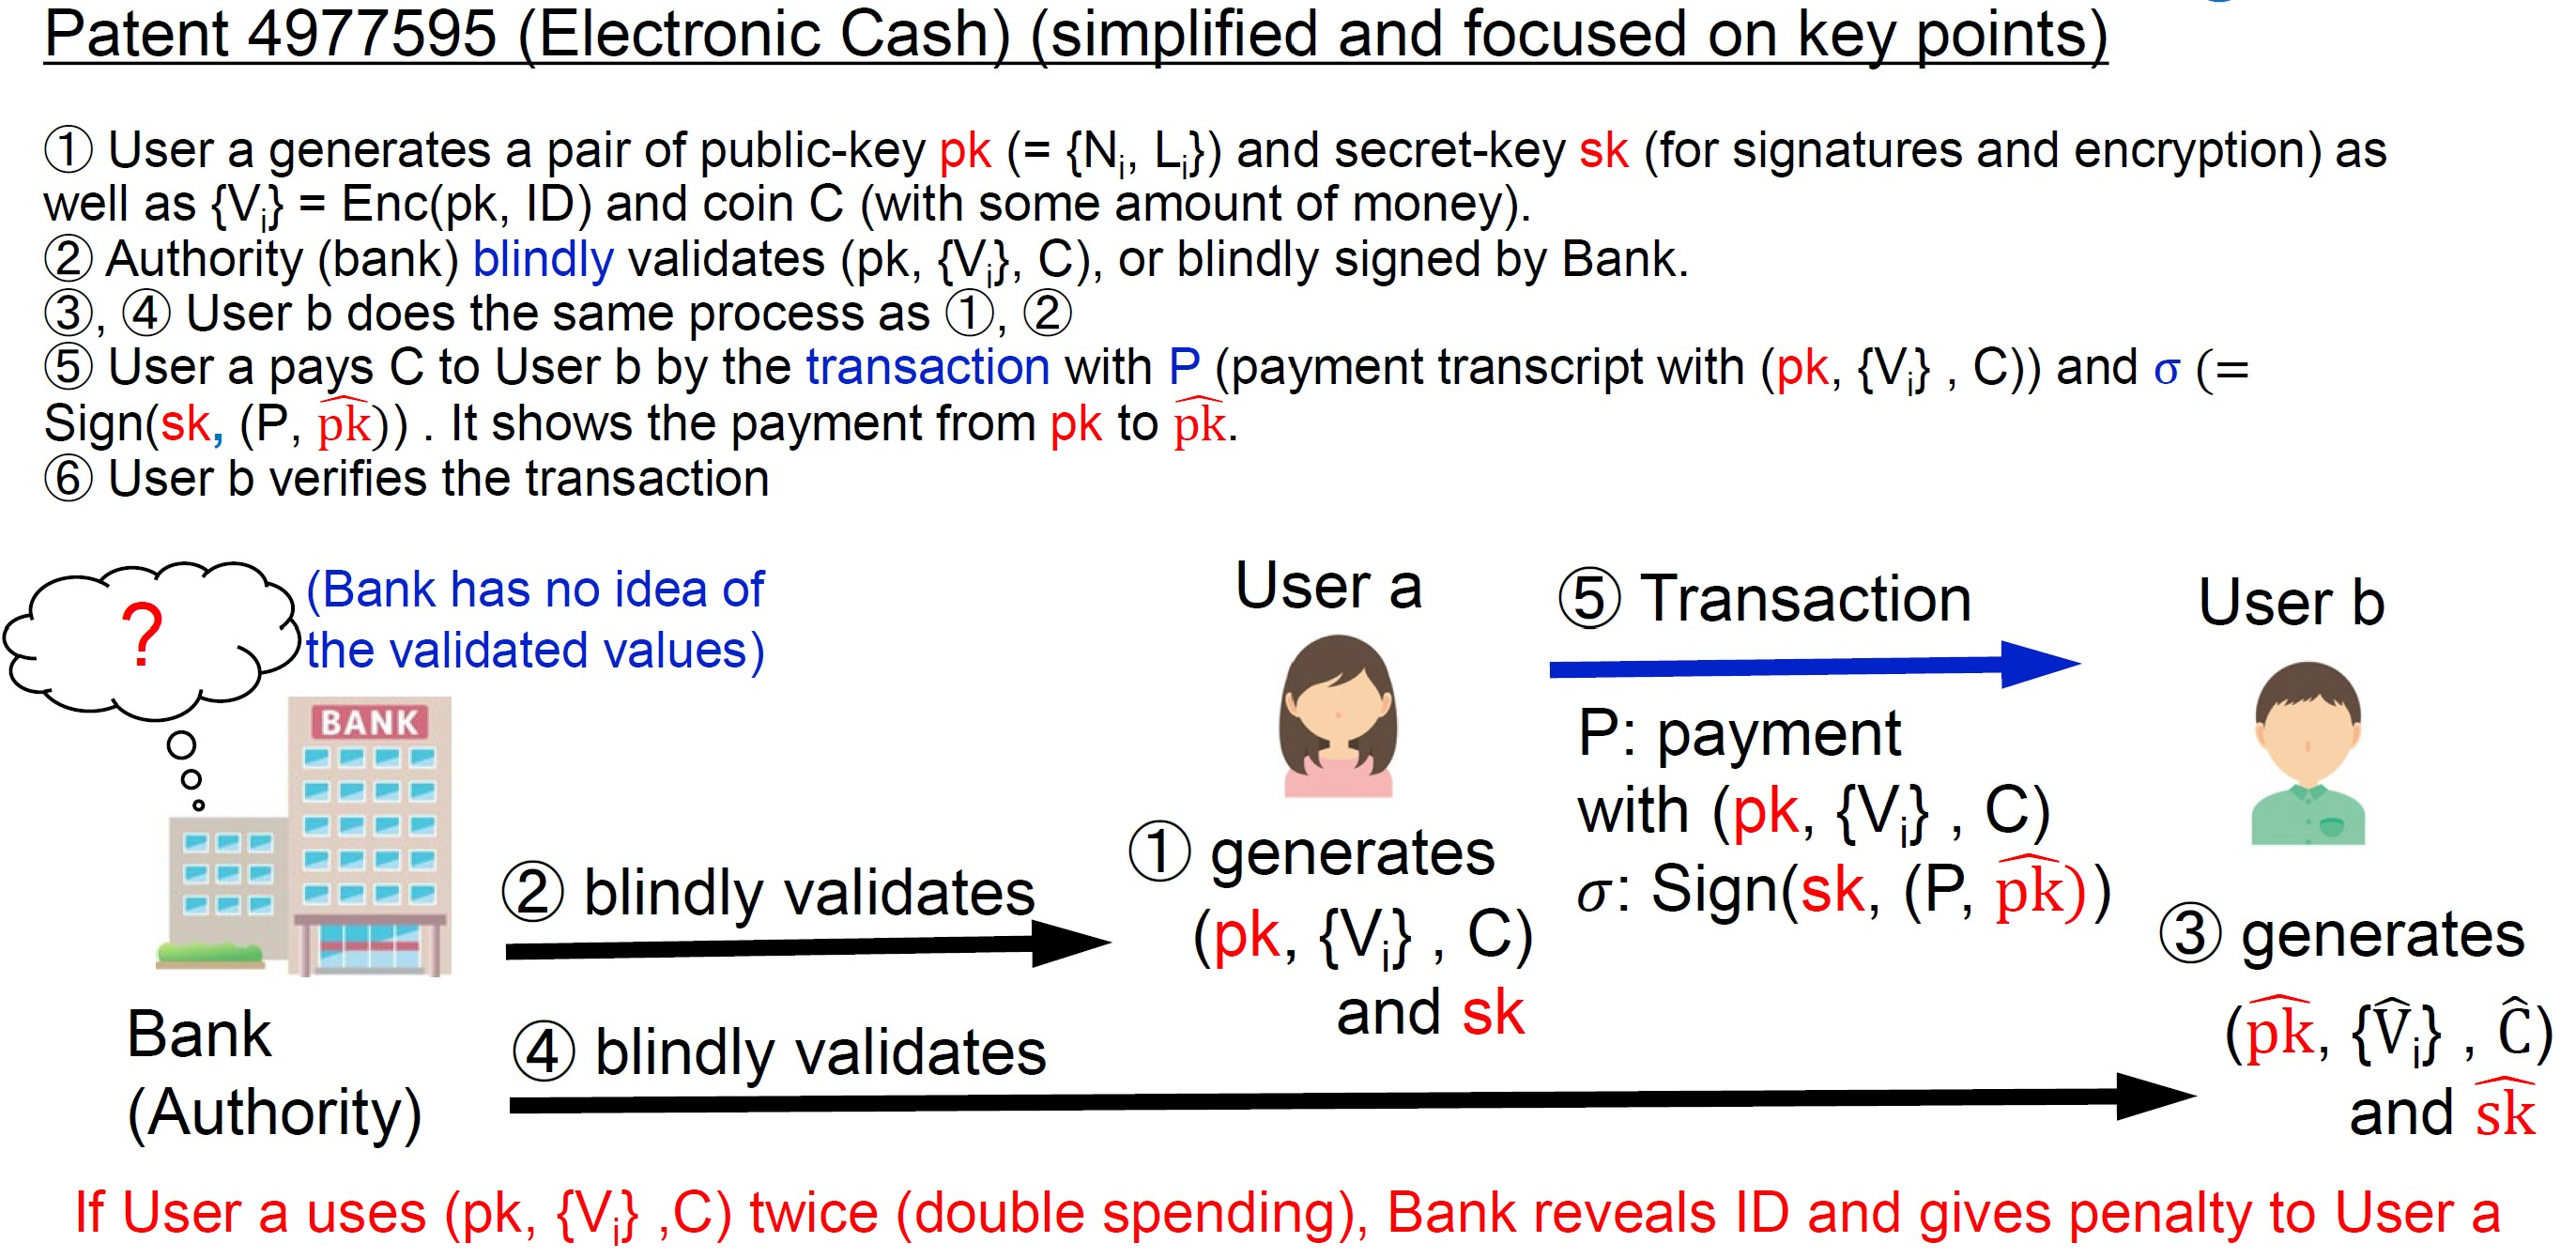 Diagram: Electronic Cash described in Patent 49775595. Source: NTT Research